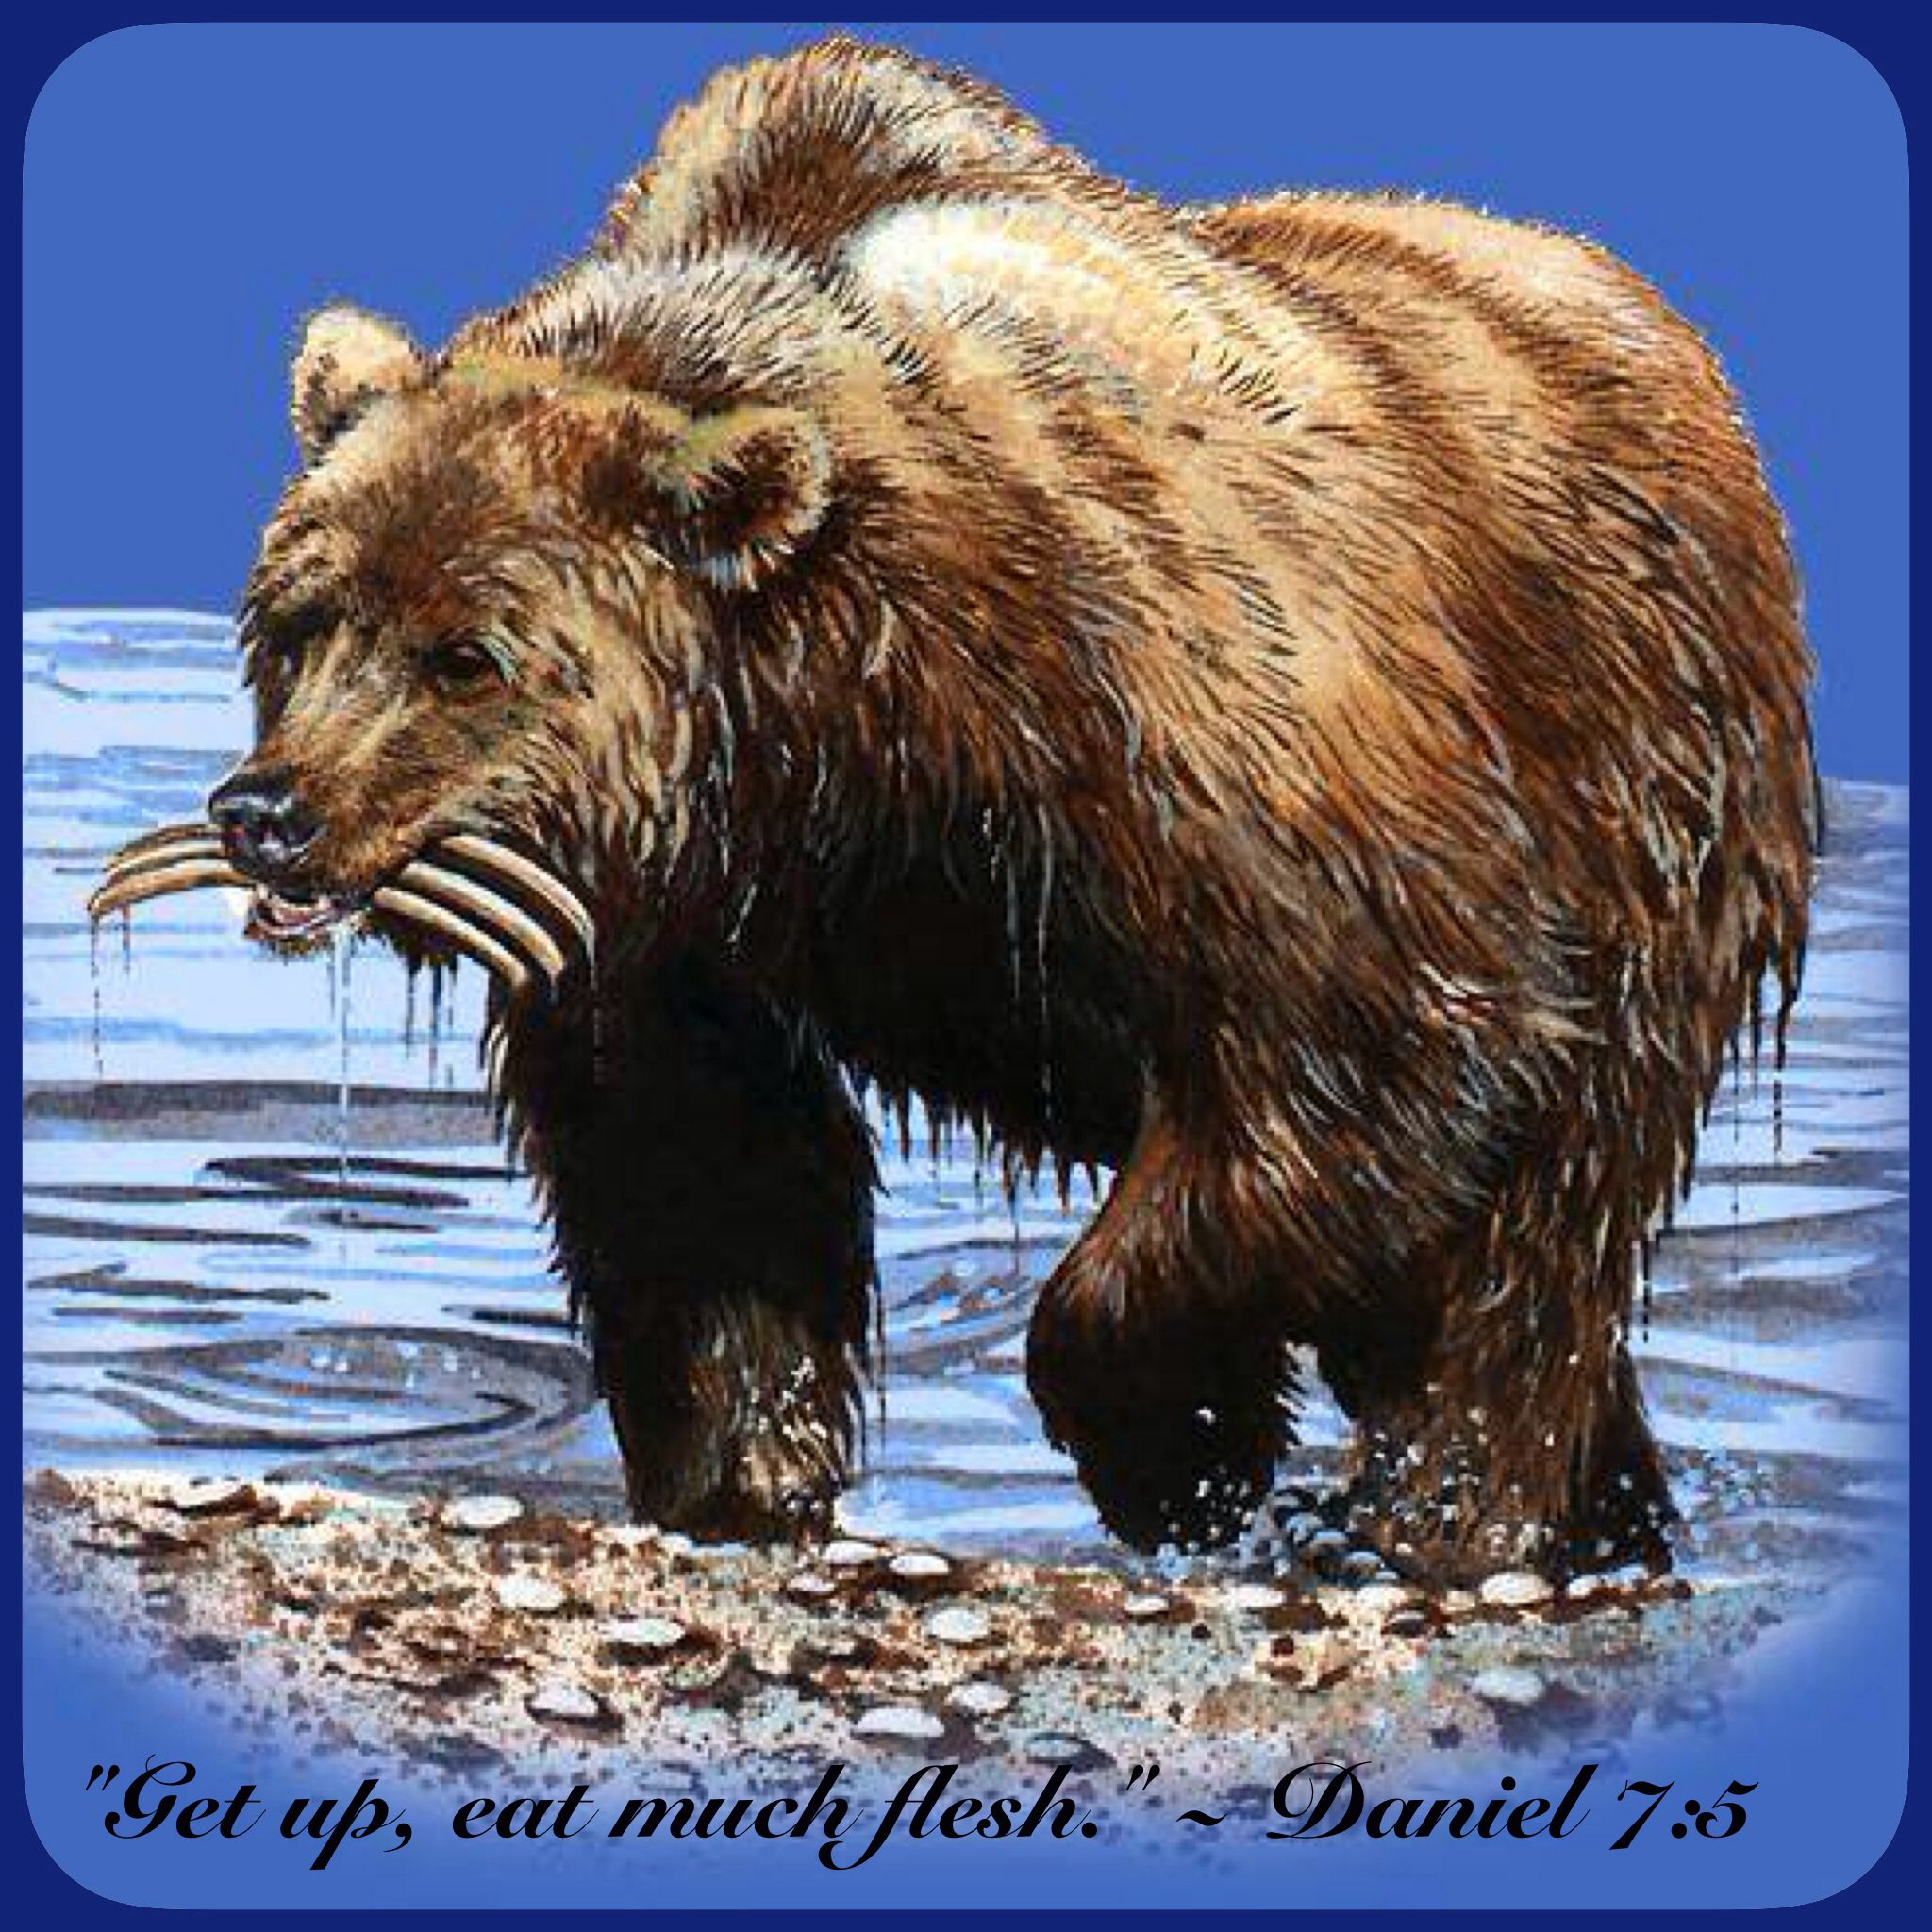 Daniel 7 5 Bear Represents Persia Ribs Are Lydia Babylon And Egypt Beast Prophet Isaiah Bible Prophecy